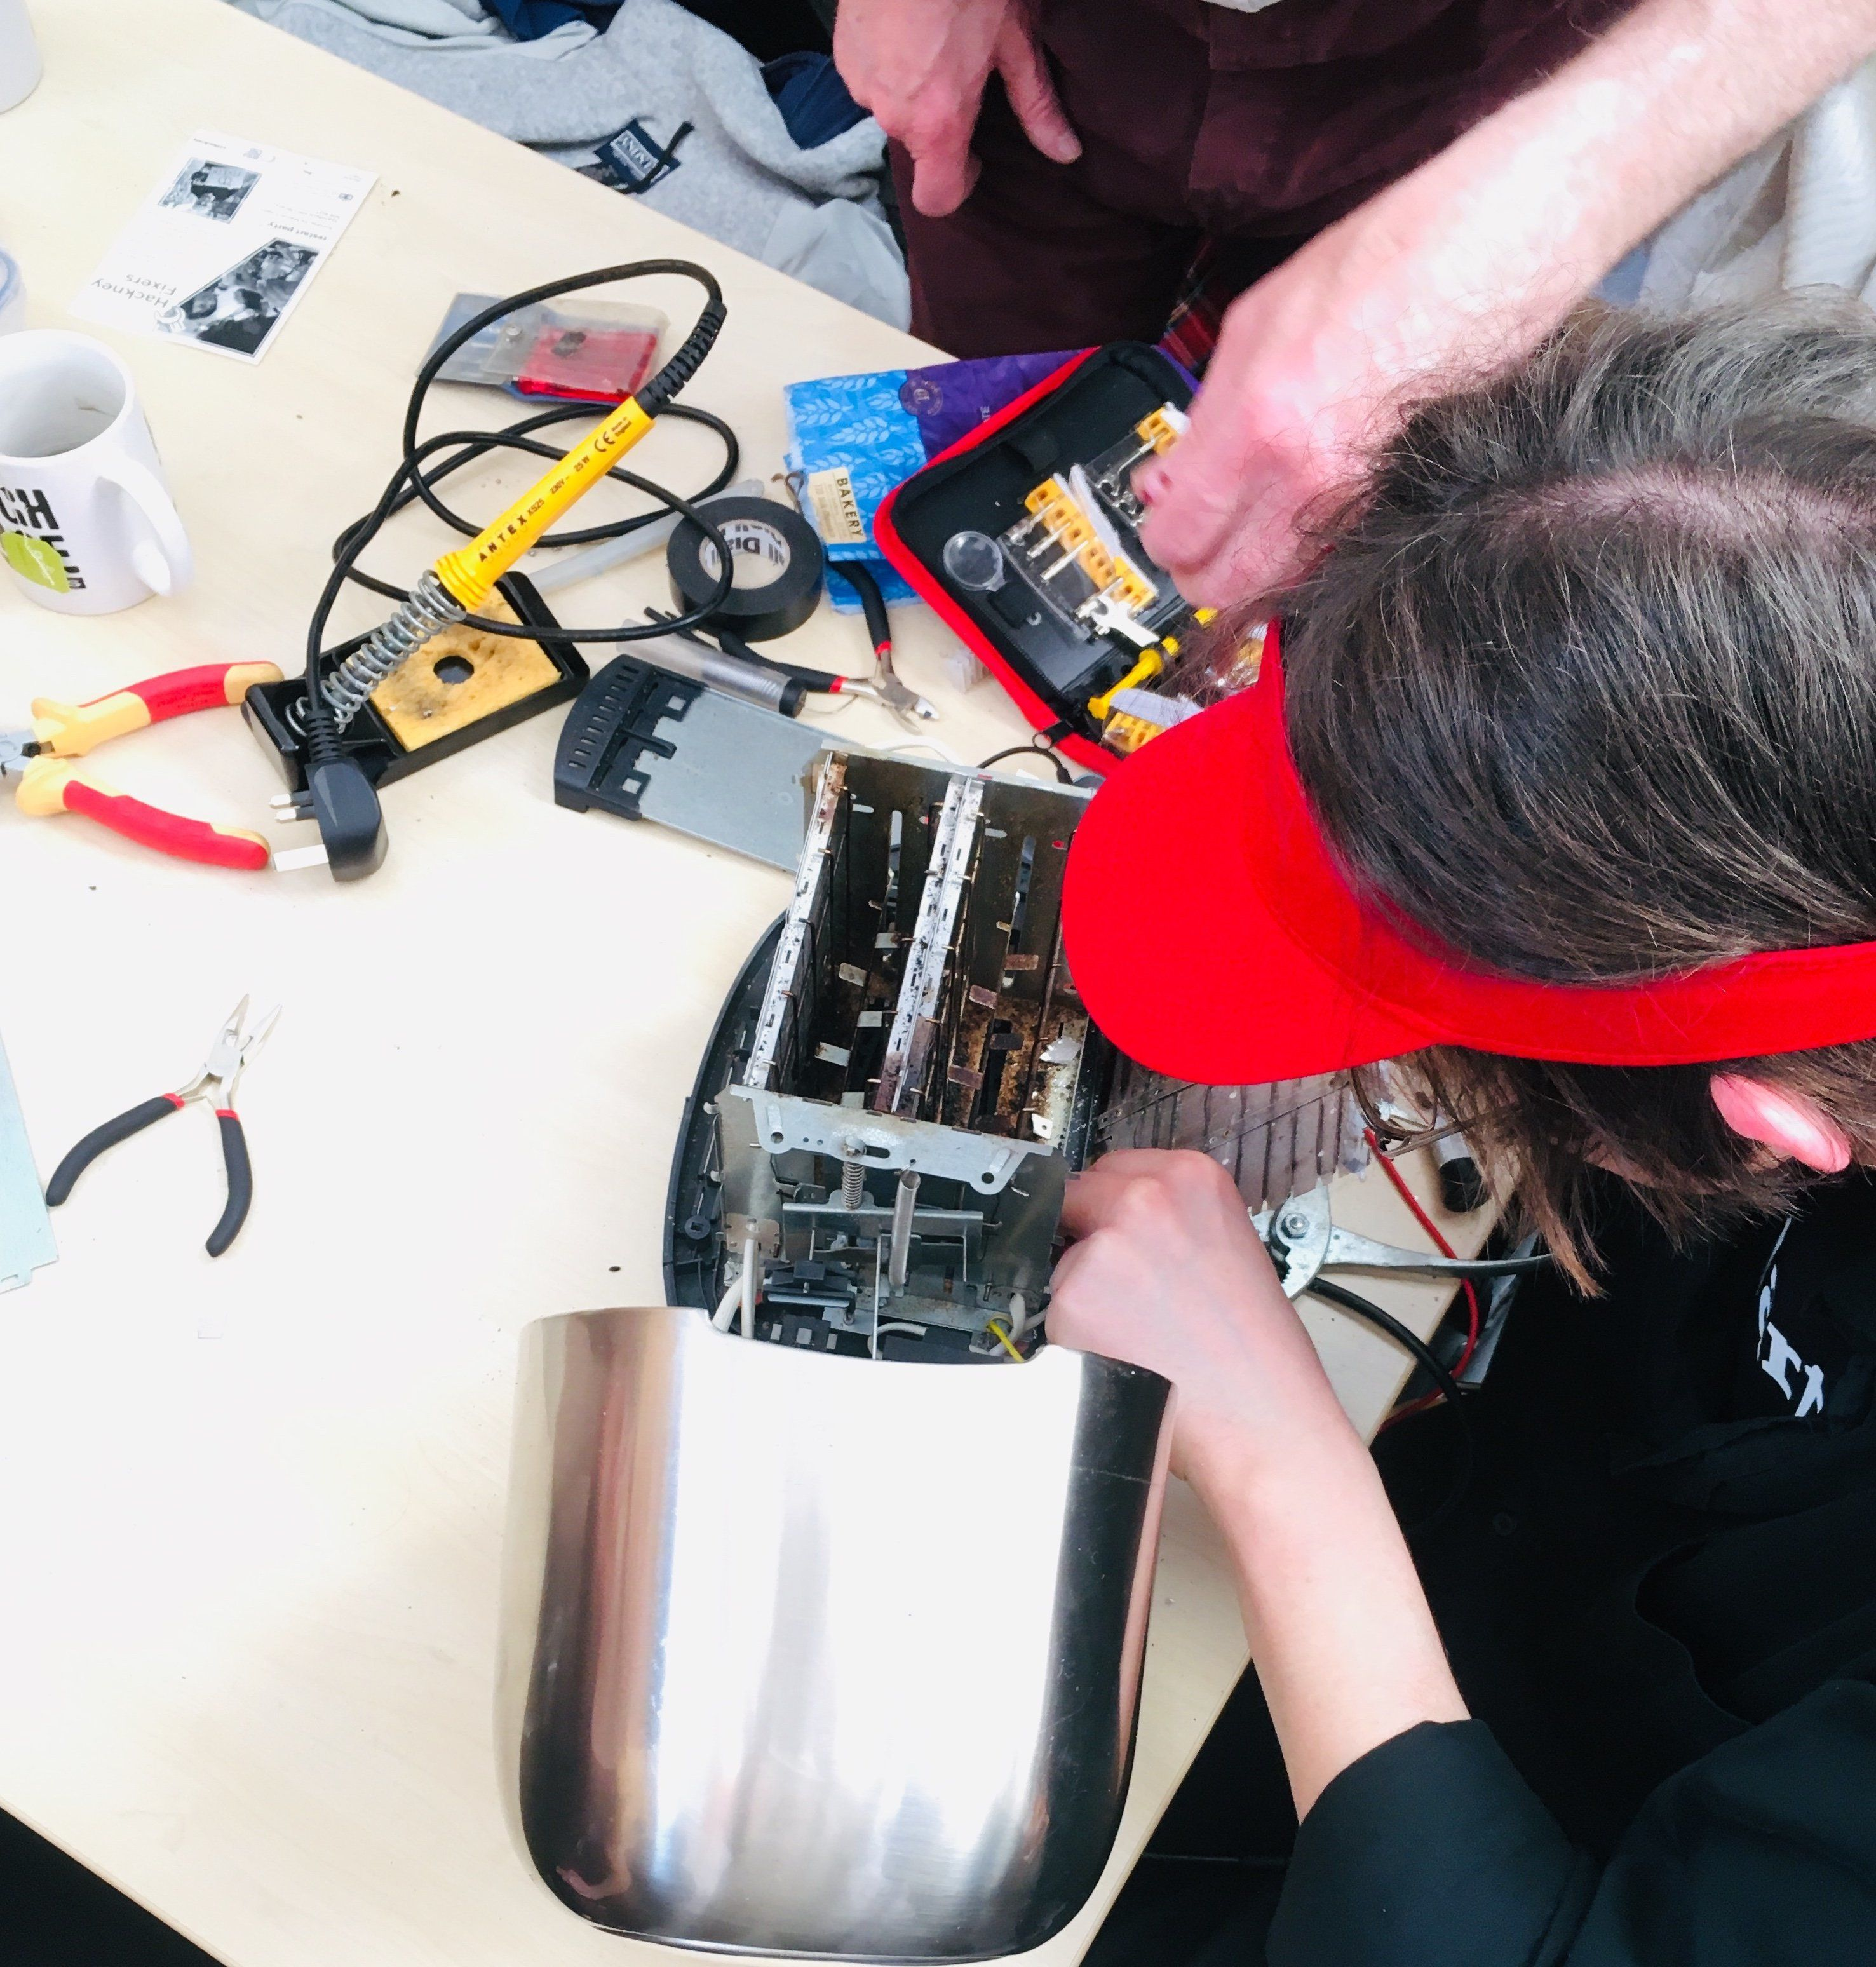 """A volunteer """"fixpert"""" assesses a broken toaster at the repair event I went to in London. The aim isn't just to fix the applia"""